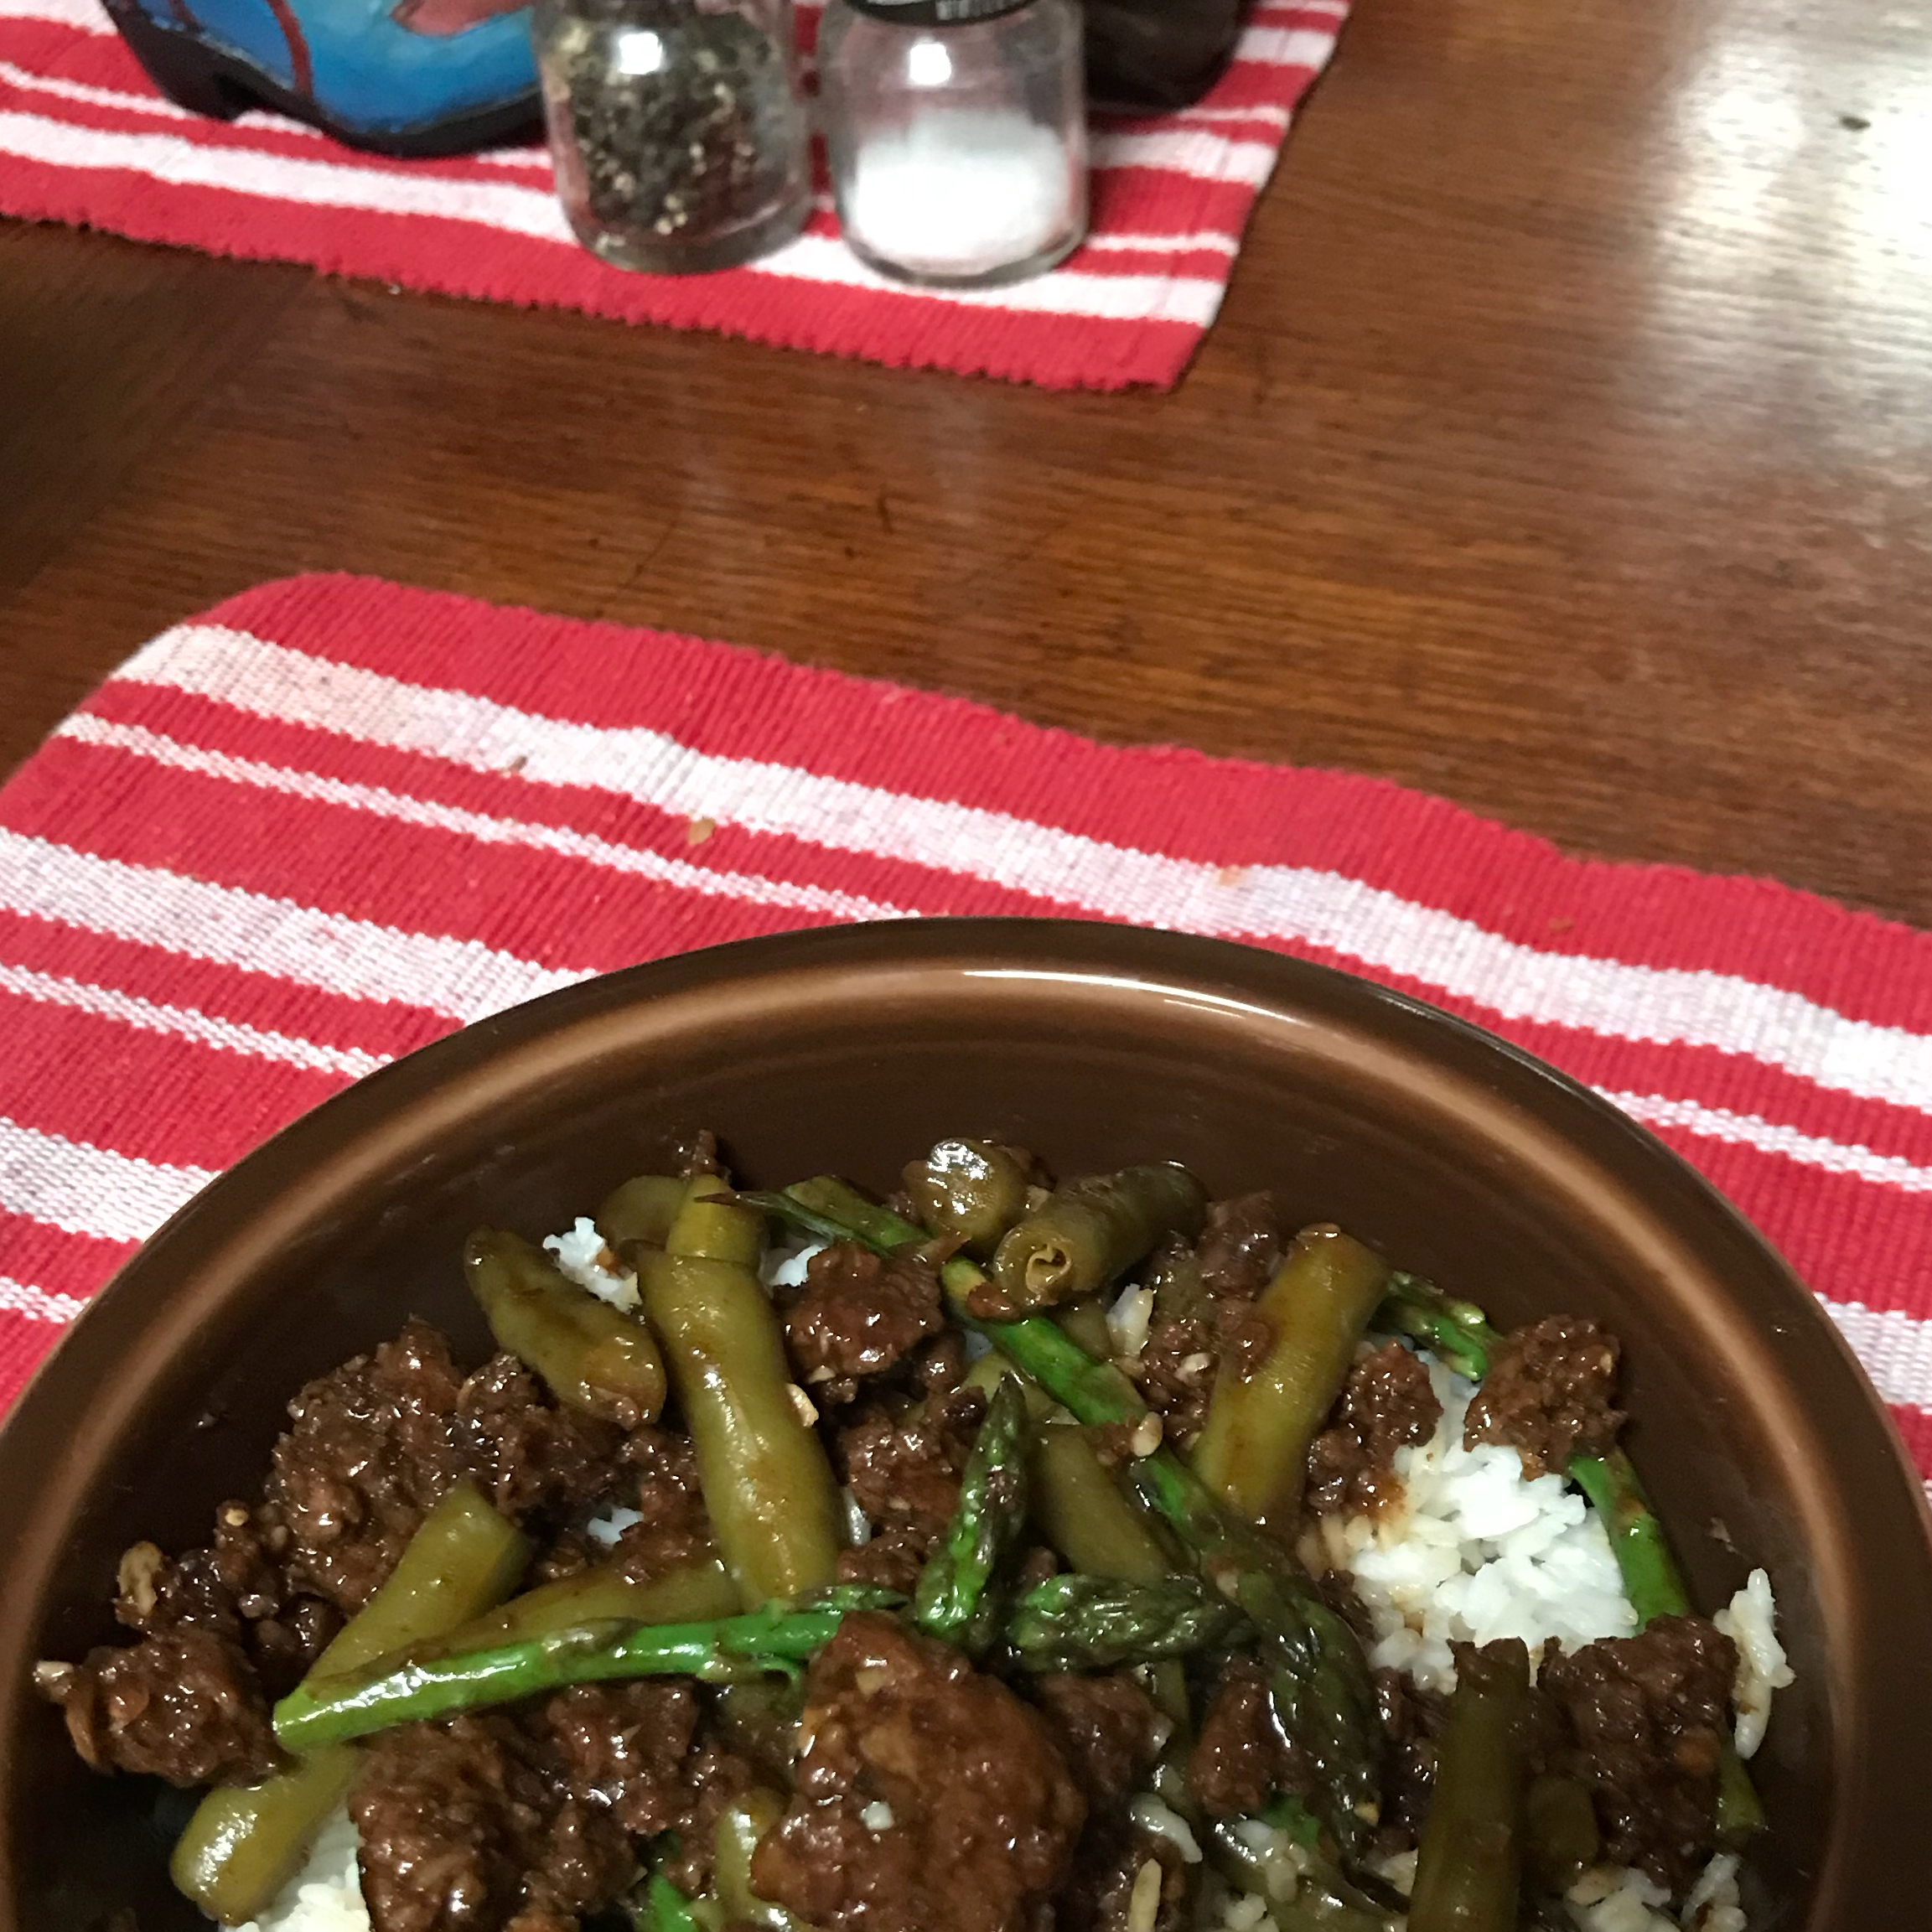 Gel's Green Beans and Beef TinyFromTexas